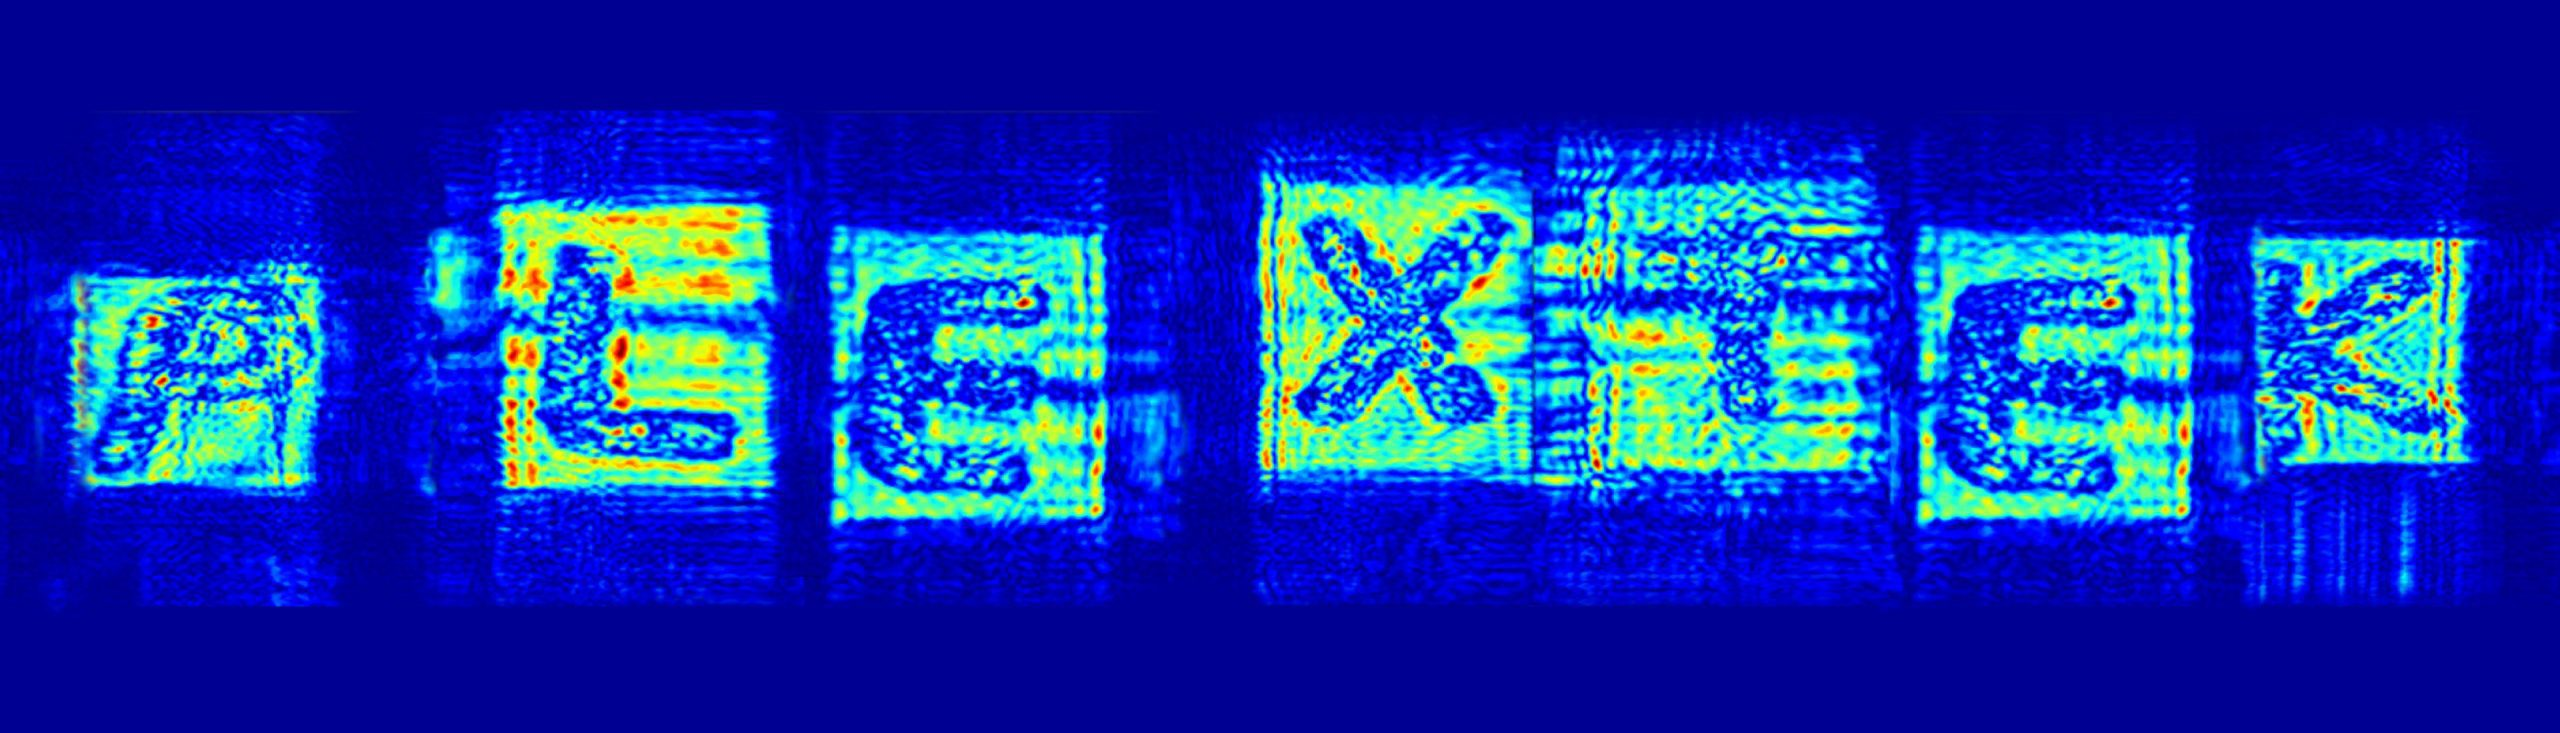 Thermal imaging, blog header image